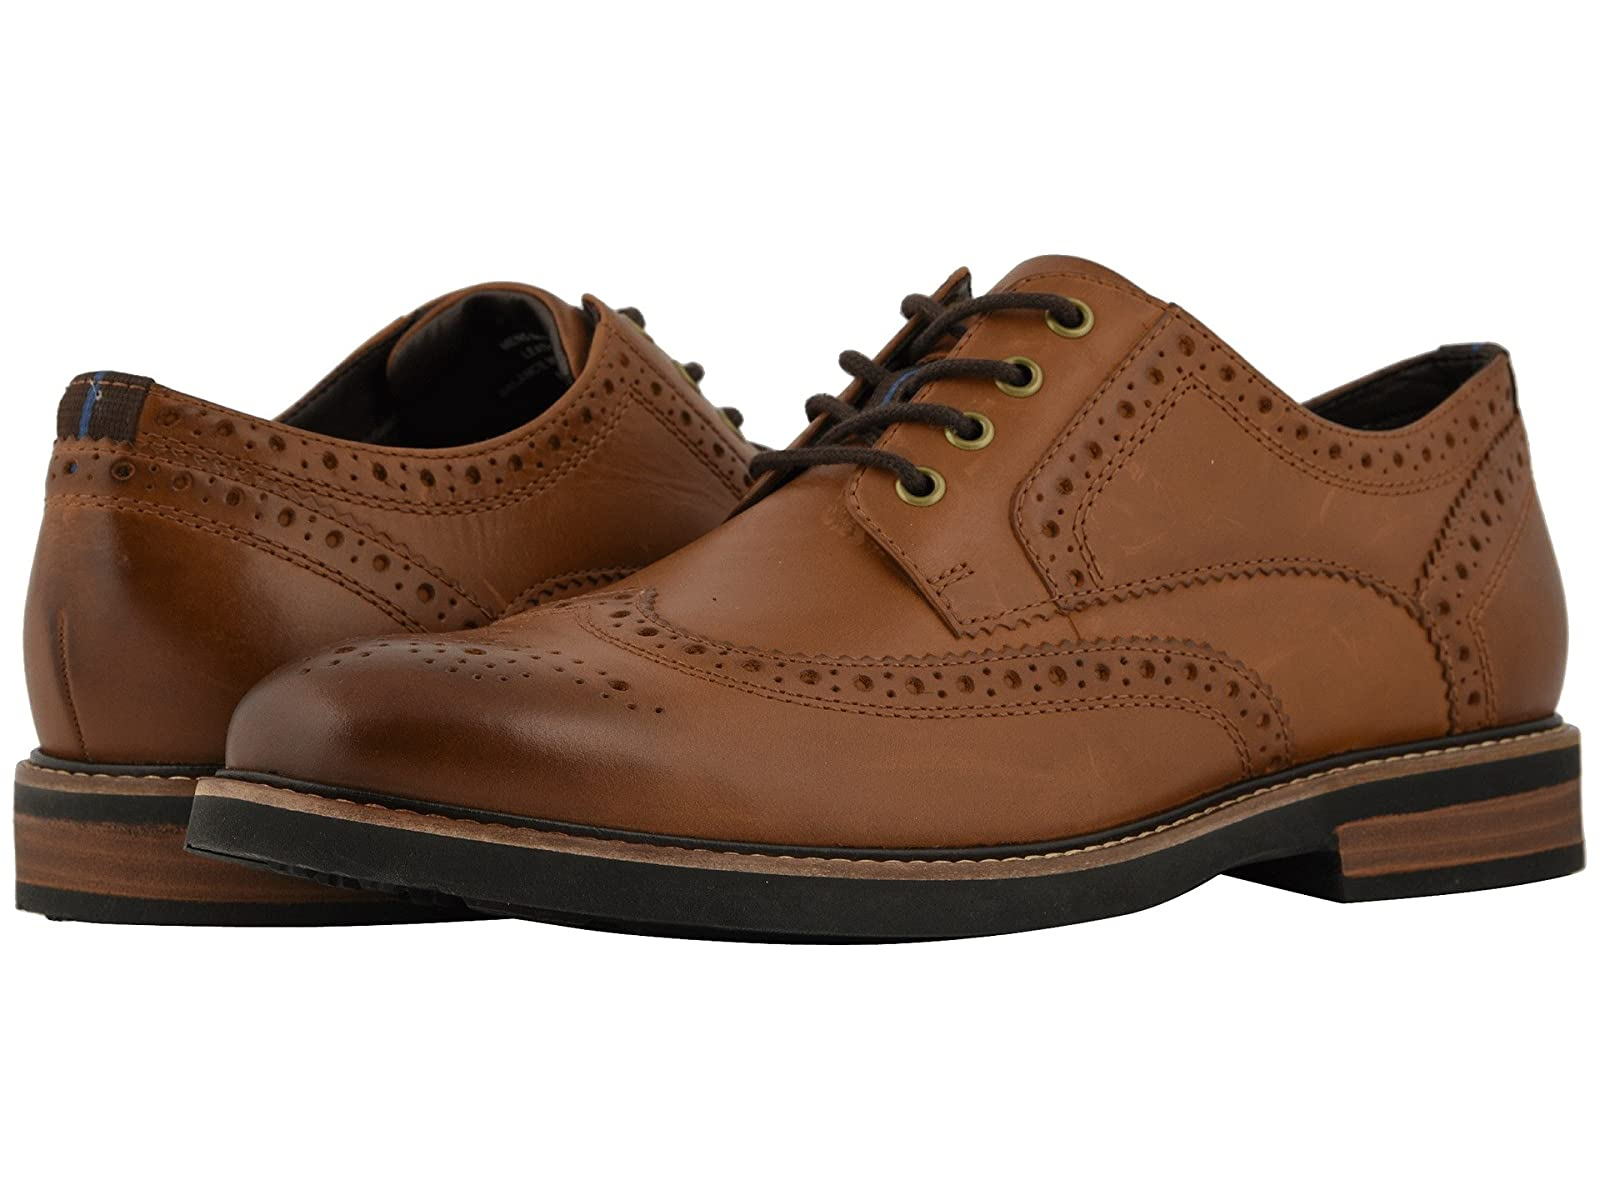 Nunn Bush Oakdale Wingtip Oxford with KORE Walking Comfort TechnologyAtmospheric grades have affordable shoes